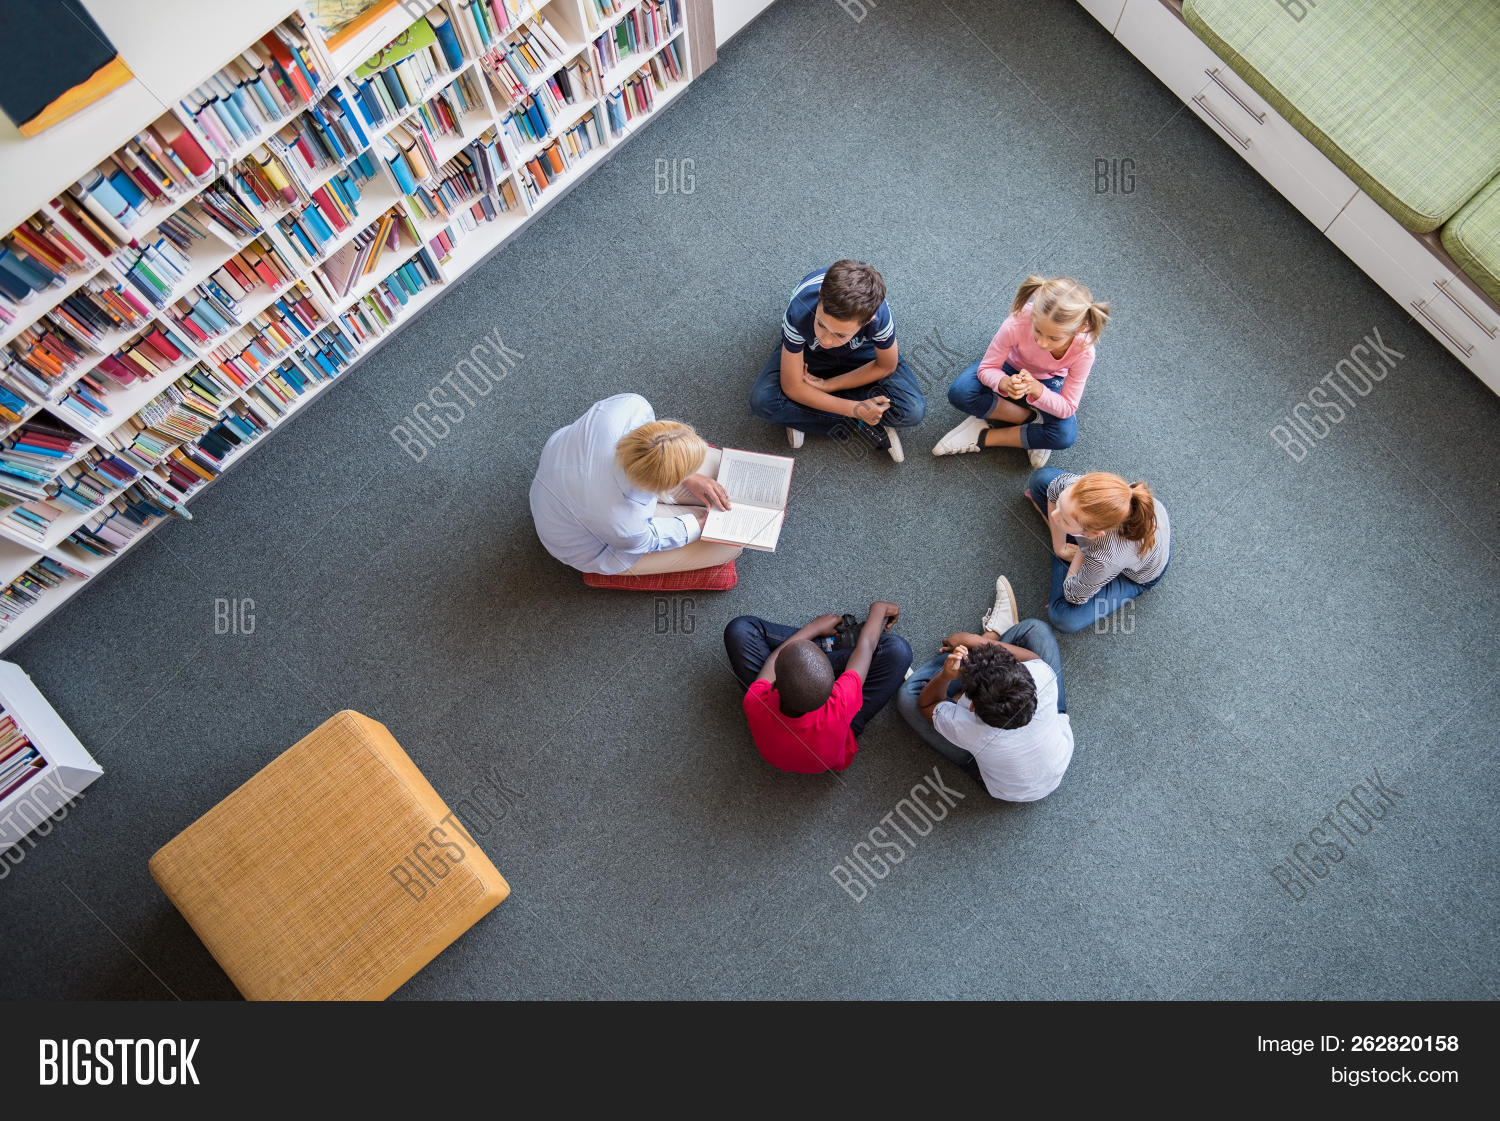 book,boy,boys,child,childhood,circle,class,classroom,cute,diversity,education,elementary,elementary school,elementary students,ethnicity,fairy tale,floor,girl,girls,group,growth,happy,high angle view,kid,knowledge,learning,librarian,library,listen,multi ethnic group,multiethnic,nursery,preschool,primary,read,school,sitting,sitting in circle,sitting on floor,story,teacher,teacher and student,teacher reading to students,top,top view,view,woman,young